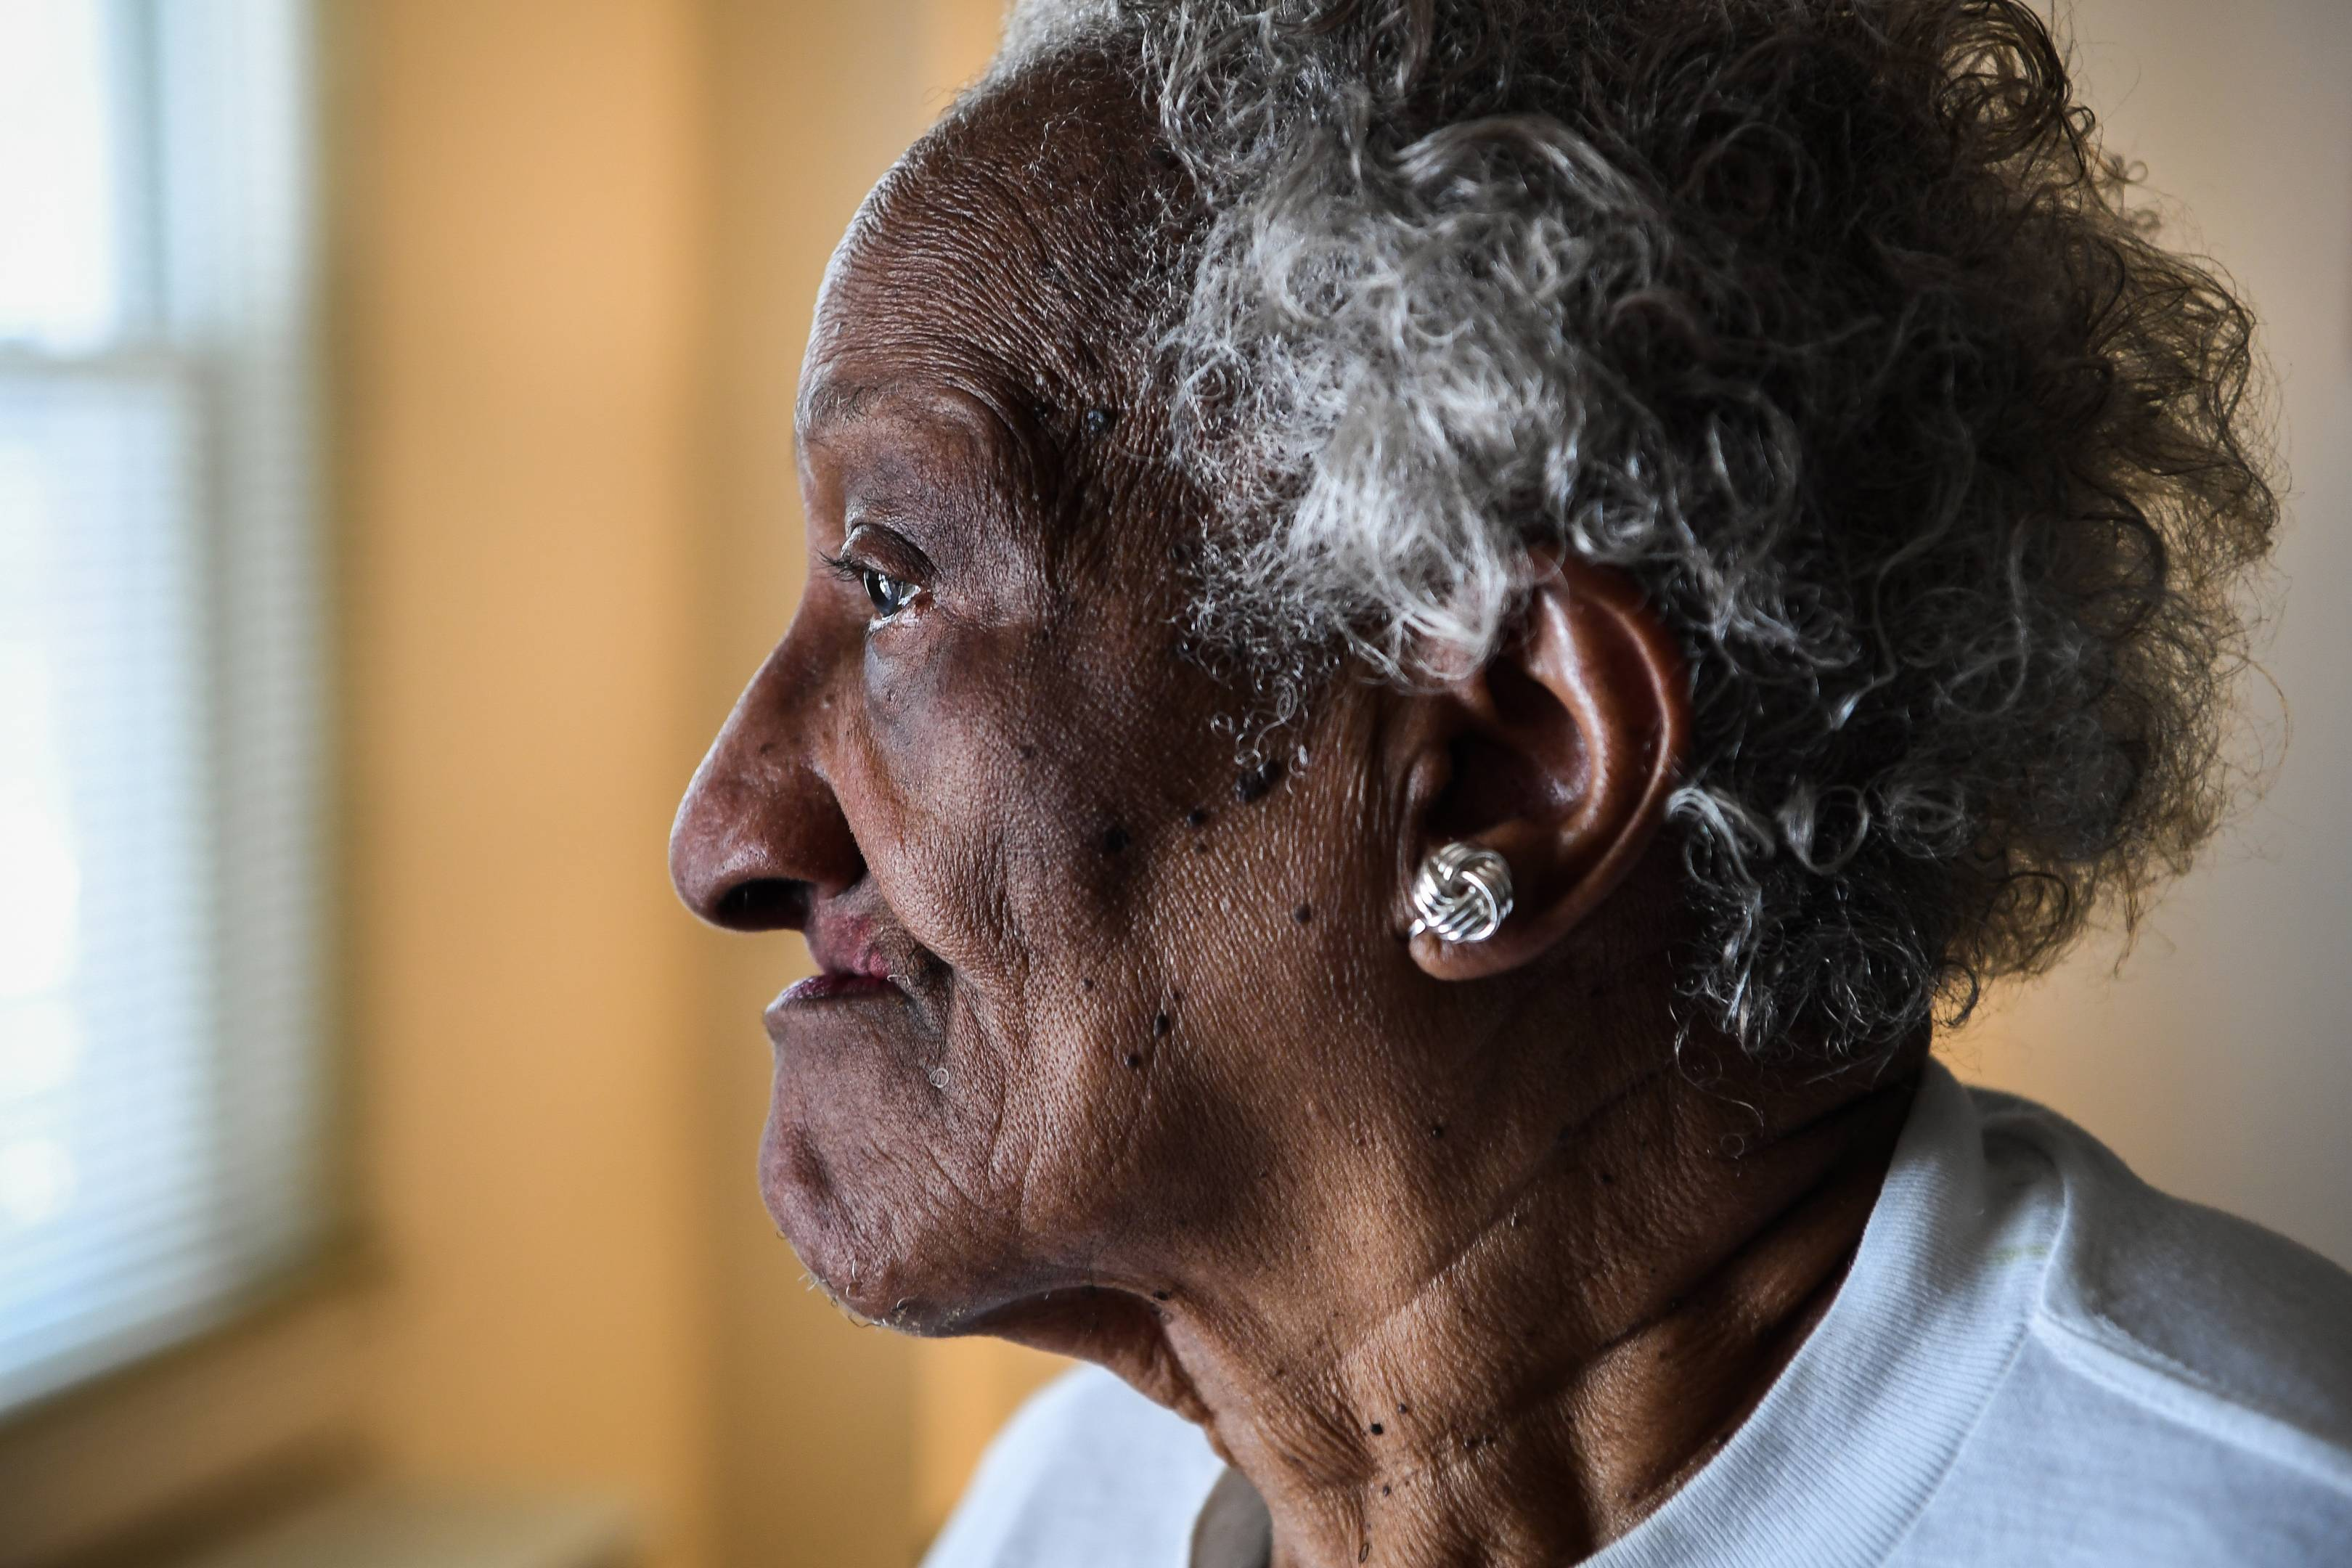 Virginia Rayford has fallen behind on payments for property taxes and insurance. Her reverse mortgage loan servicer is trying to foreclose on her home, where she's lived since 1979.